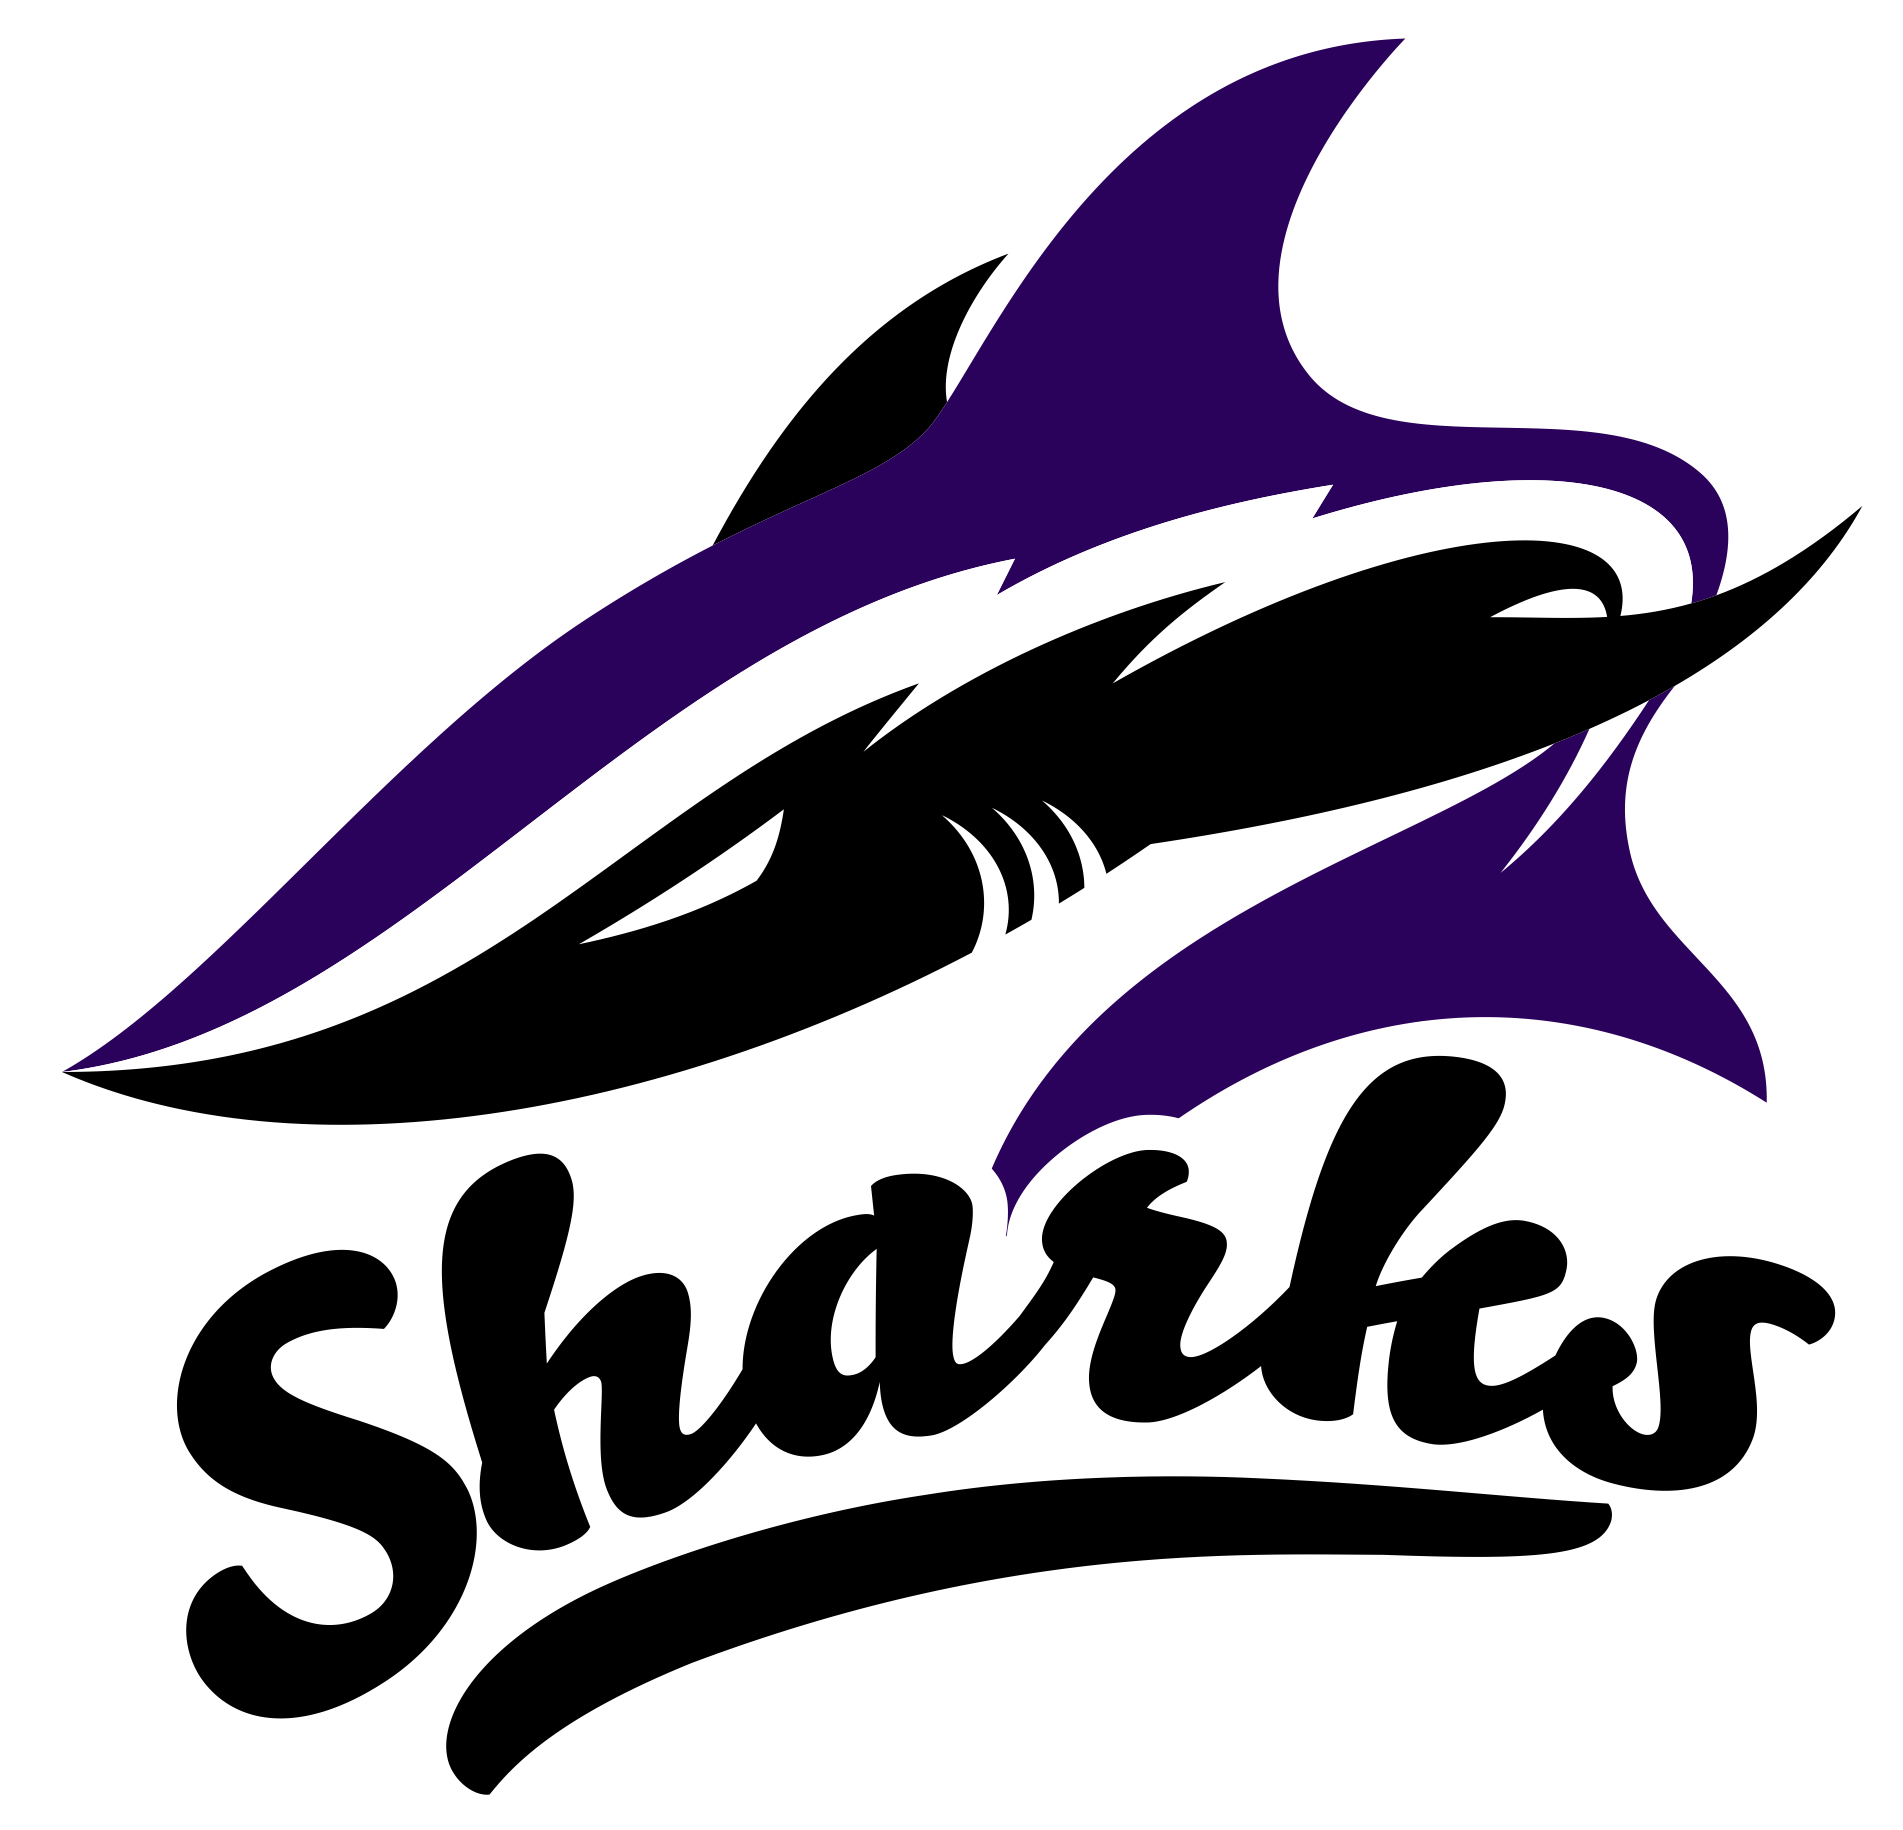 Girls softball png. Bay state sharks fastpitch